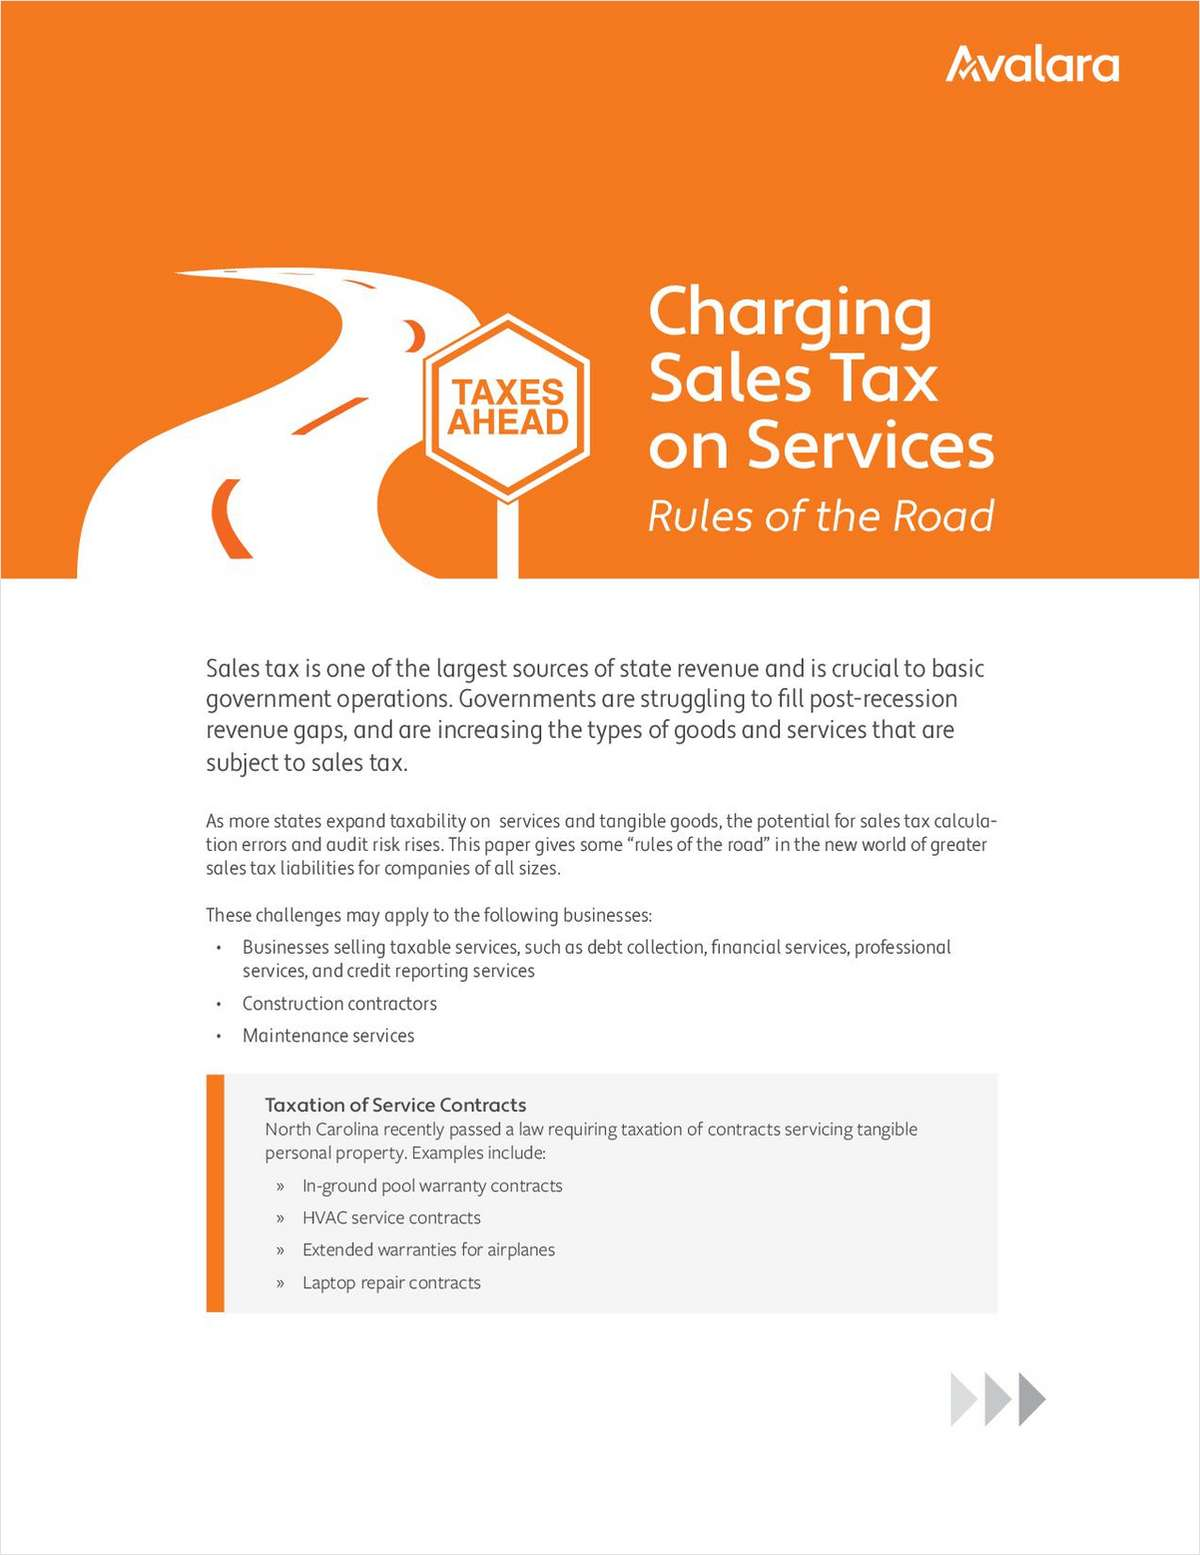 Charging Sales Tax on Services